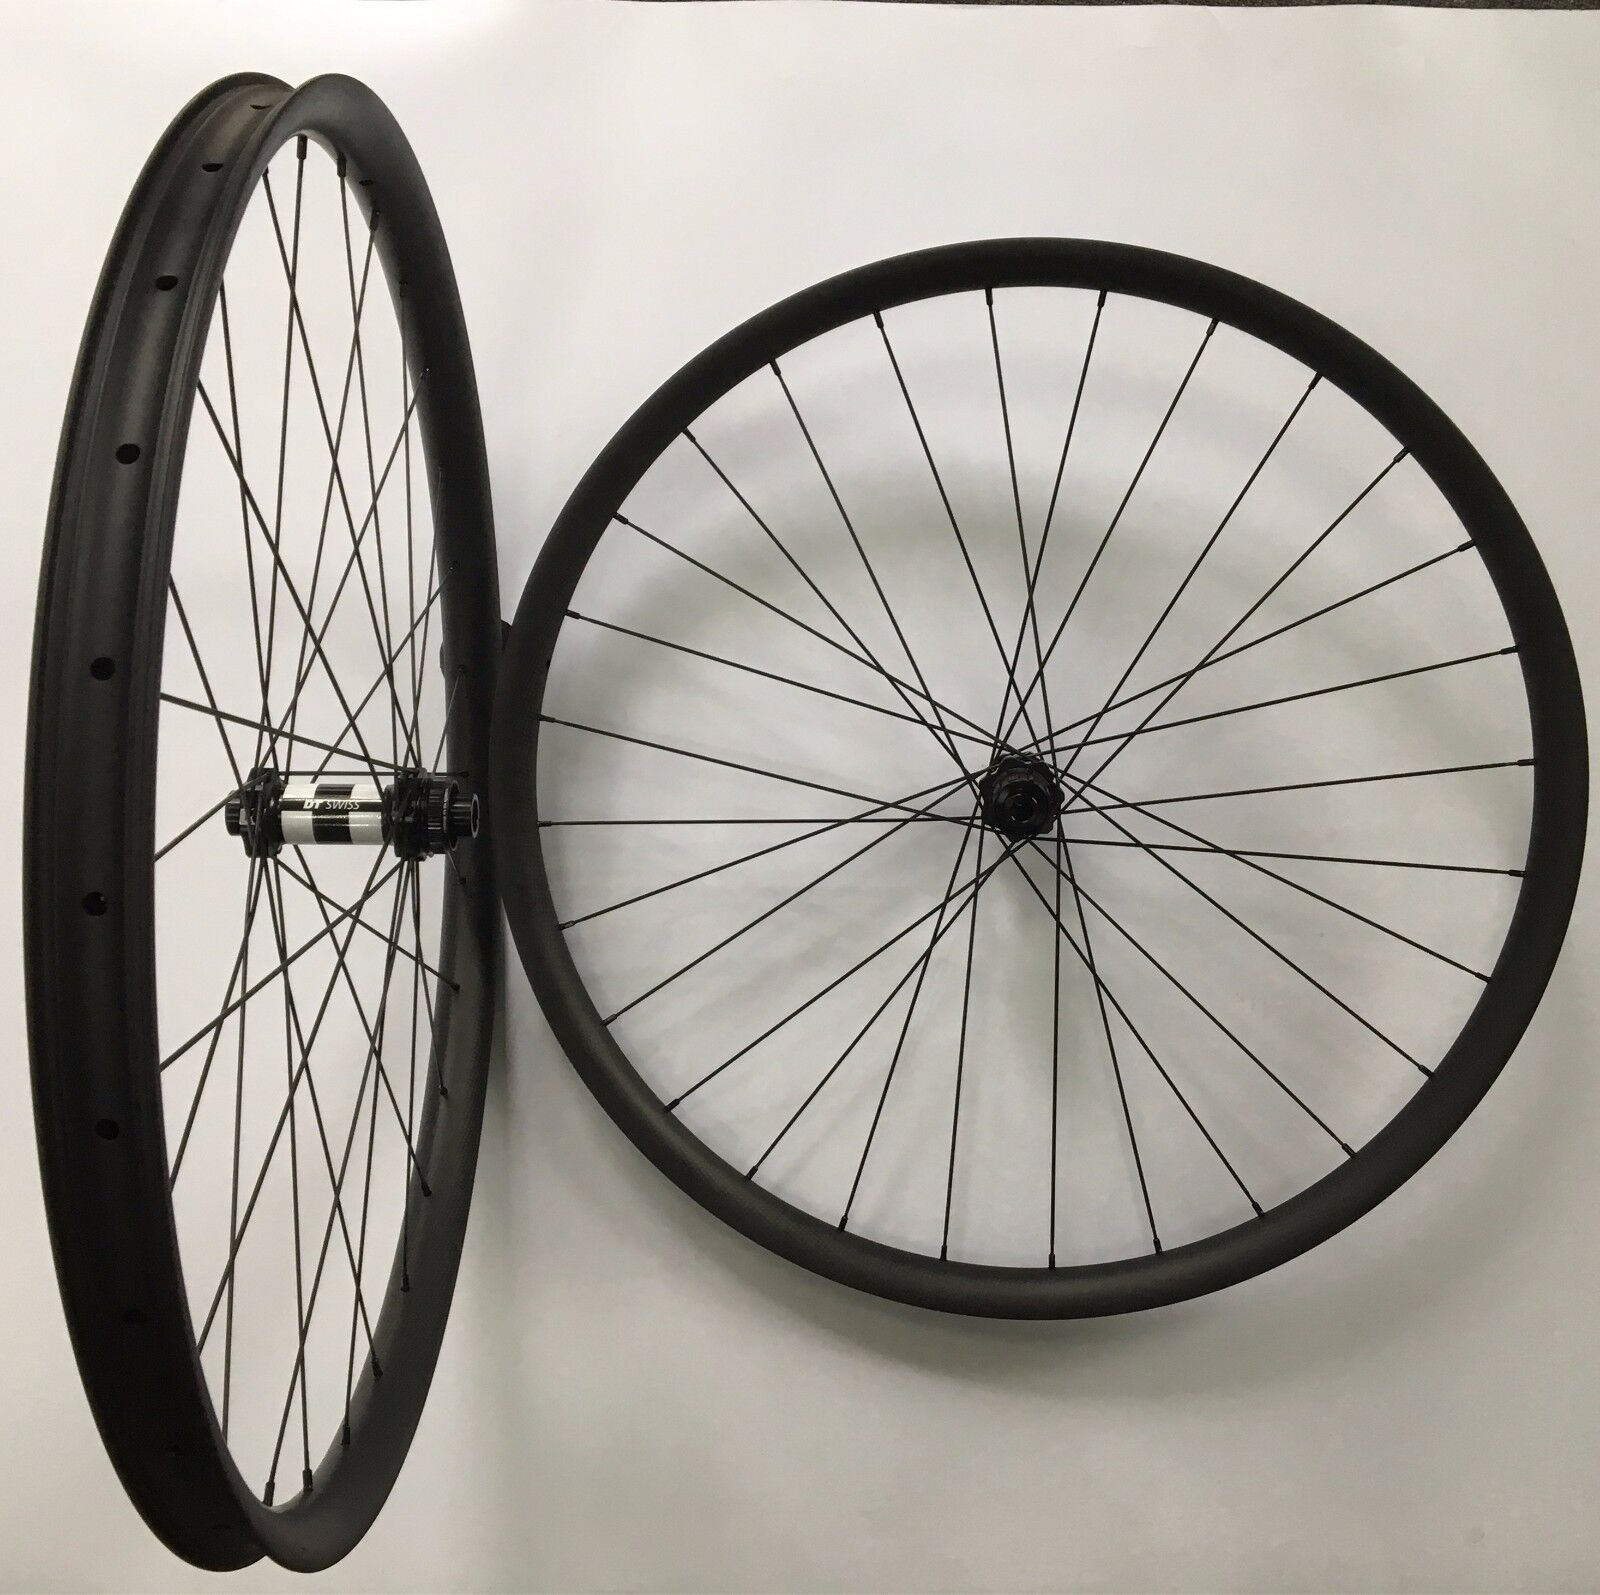 DT SWISS 350 Carbon mtb wheels 36mm width mountain bicycle tubeless wheels 29er